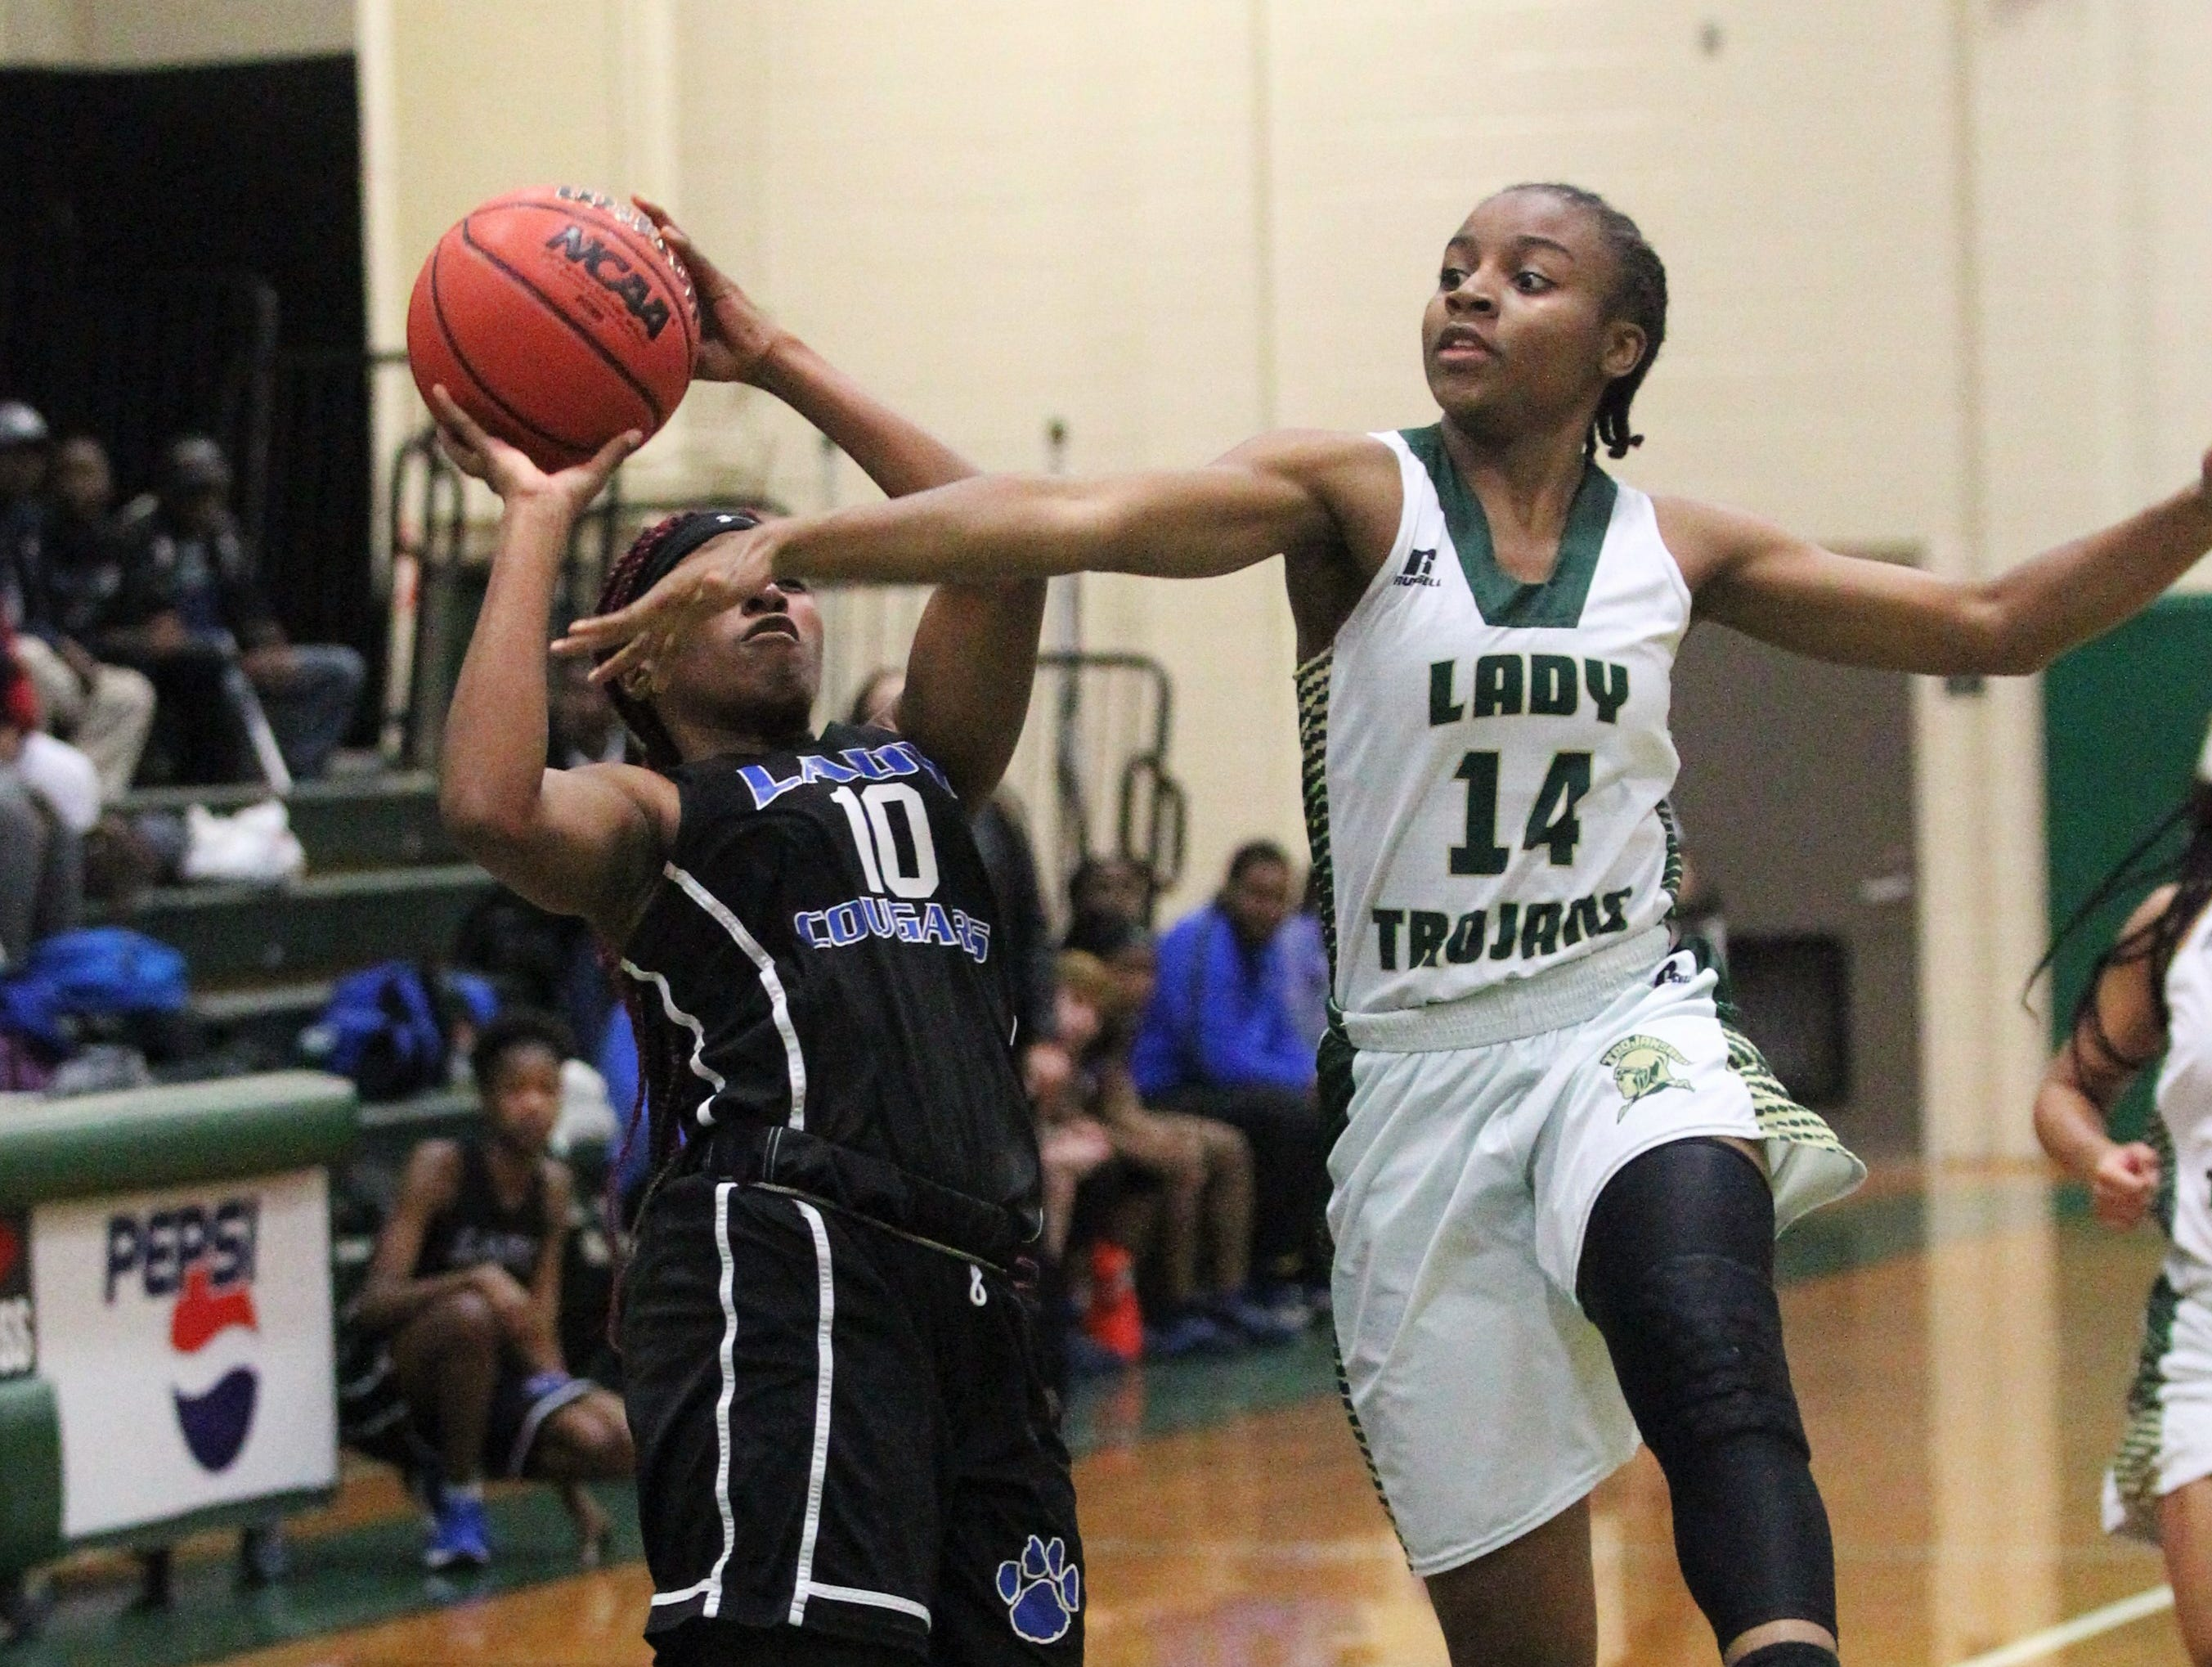 Godby's Kiara Byrd has her shot disrupted by Lincoln's Tariah Mosley as Lincoln's girls basketball team beat Godby 67-32 on Jan. 29, 2019.